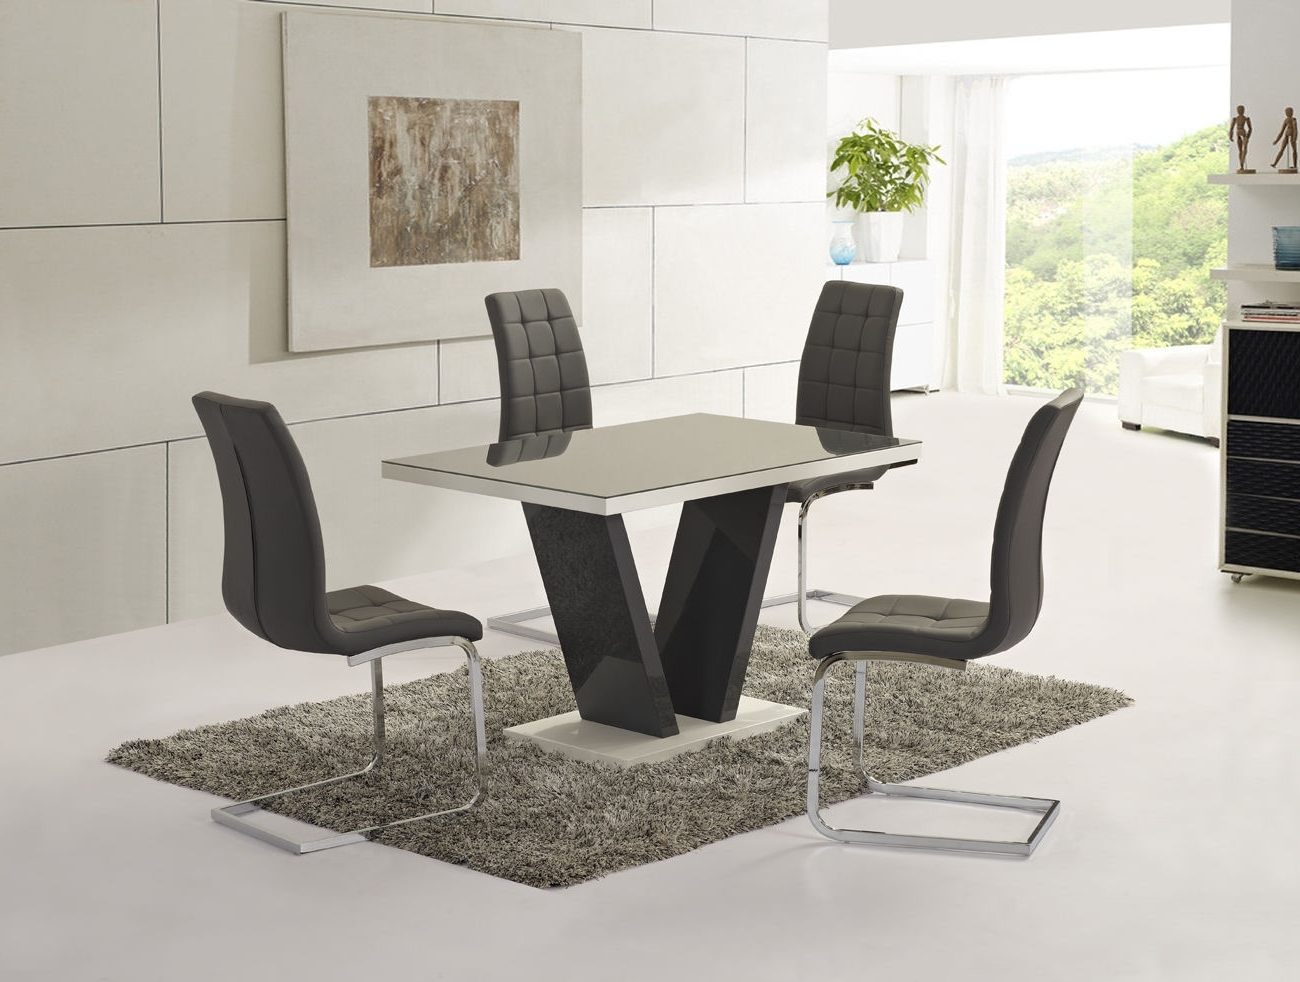 Most Recent White High Gloss Dining Tables And Chairs Pertaining To Ga Vico Gloss Grey Glass Top Designer 160Cm Dining Set – 4 6 Grey (View 10 of 25)